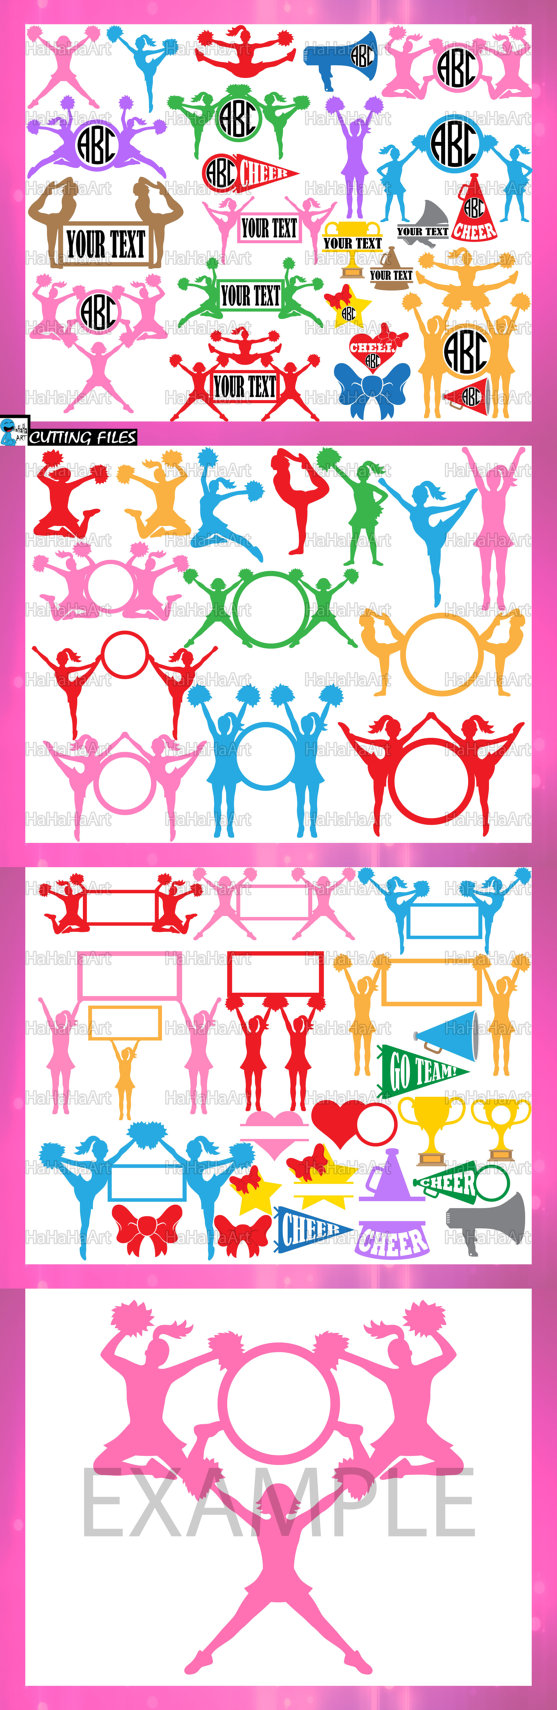 Cheer V4 Clipart Cutting Files svg png dxf eps digital